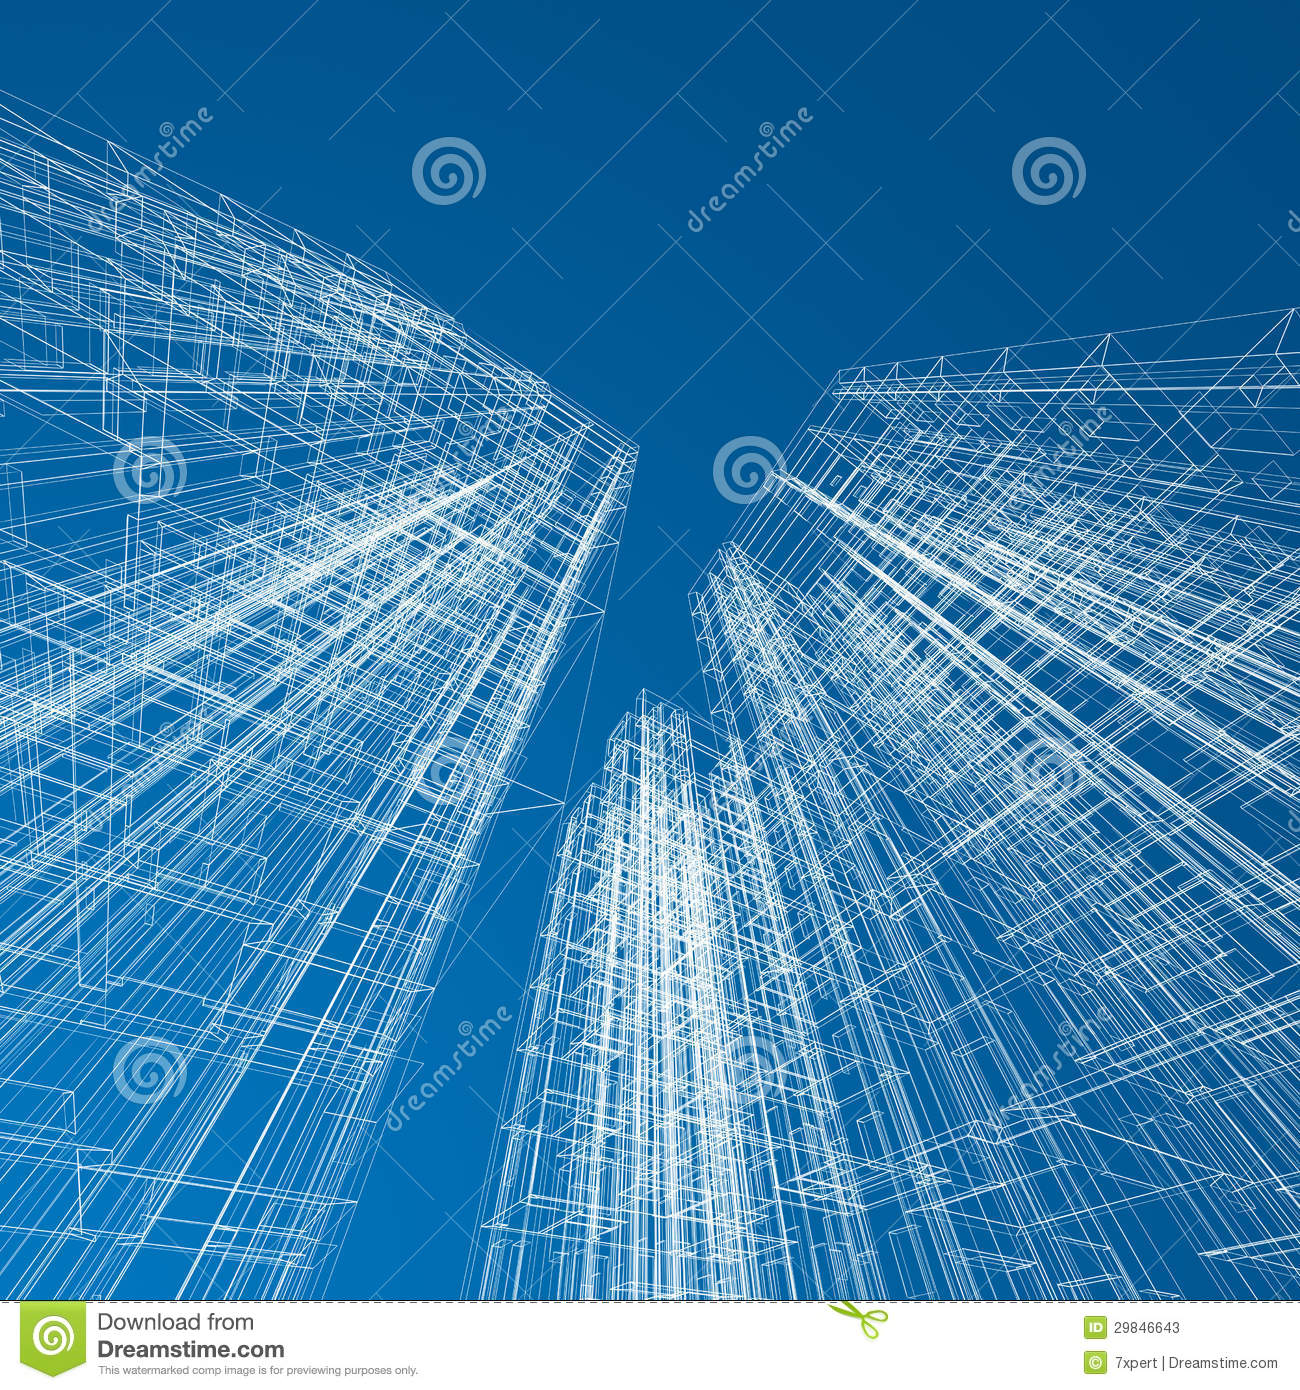 Concept skyscrapers blueprint stock photos image 29846643 Create a blueprint